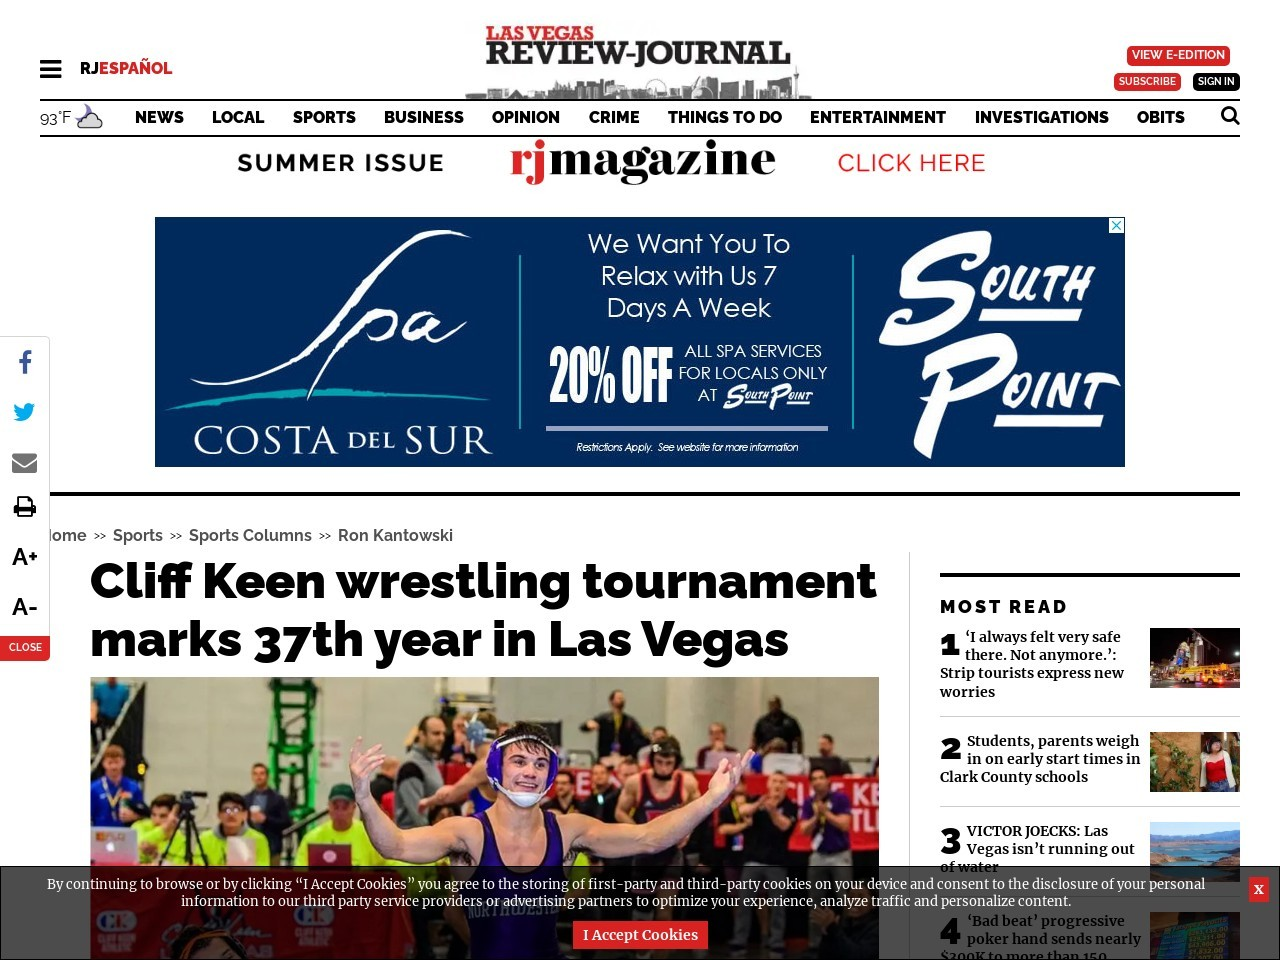 Cliff Keen wrestling tournament marks 37th year in Las Vegas